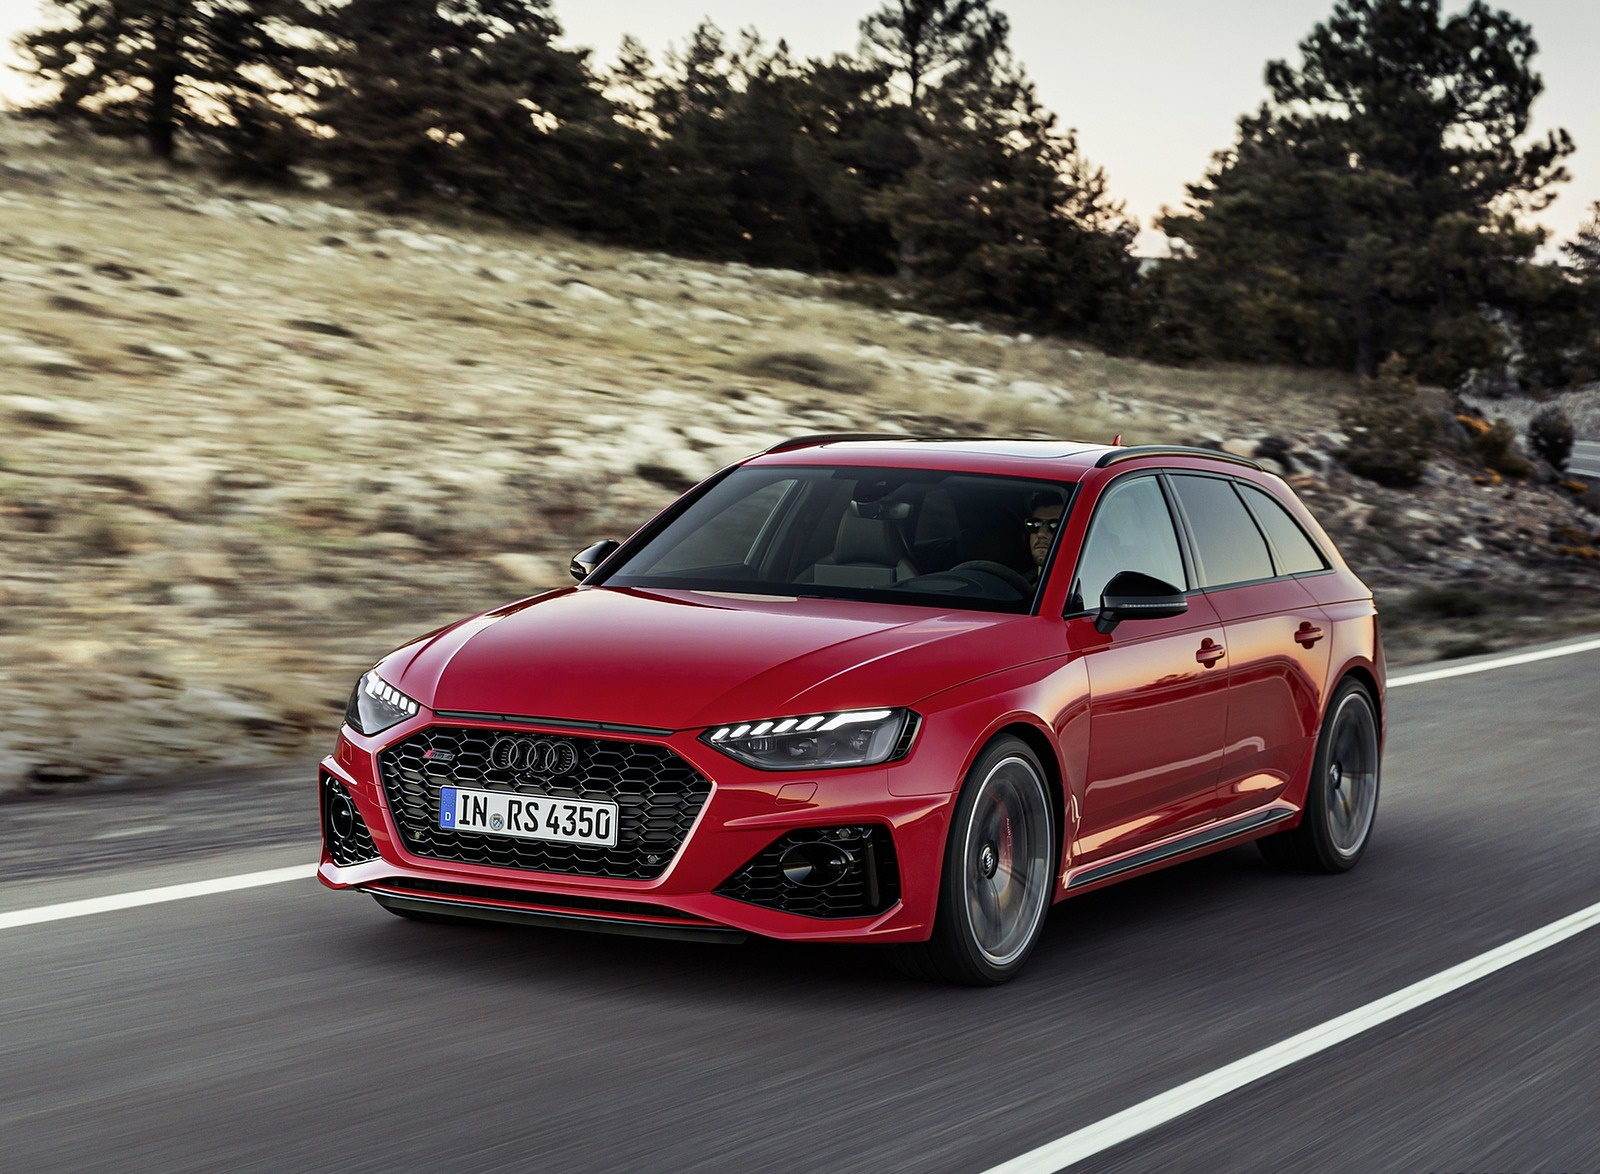 2020 Audi RS 4 Avant (Color: Tango Red) Front Three-Quarter Wallpapers (3)